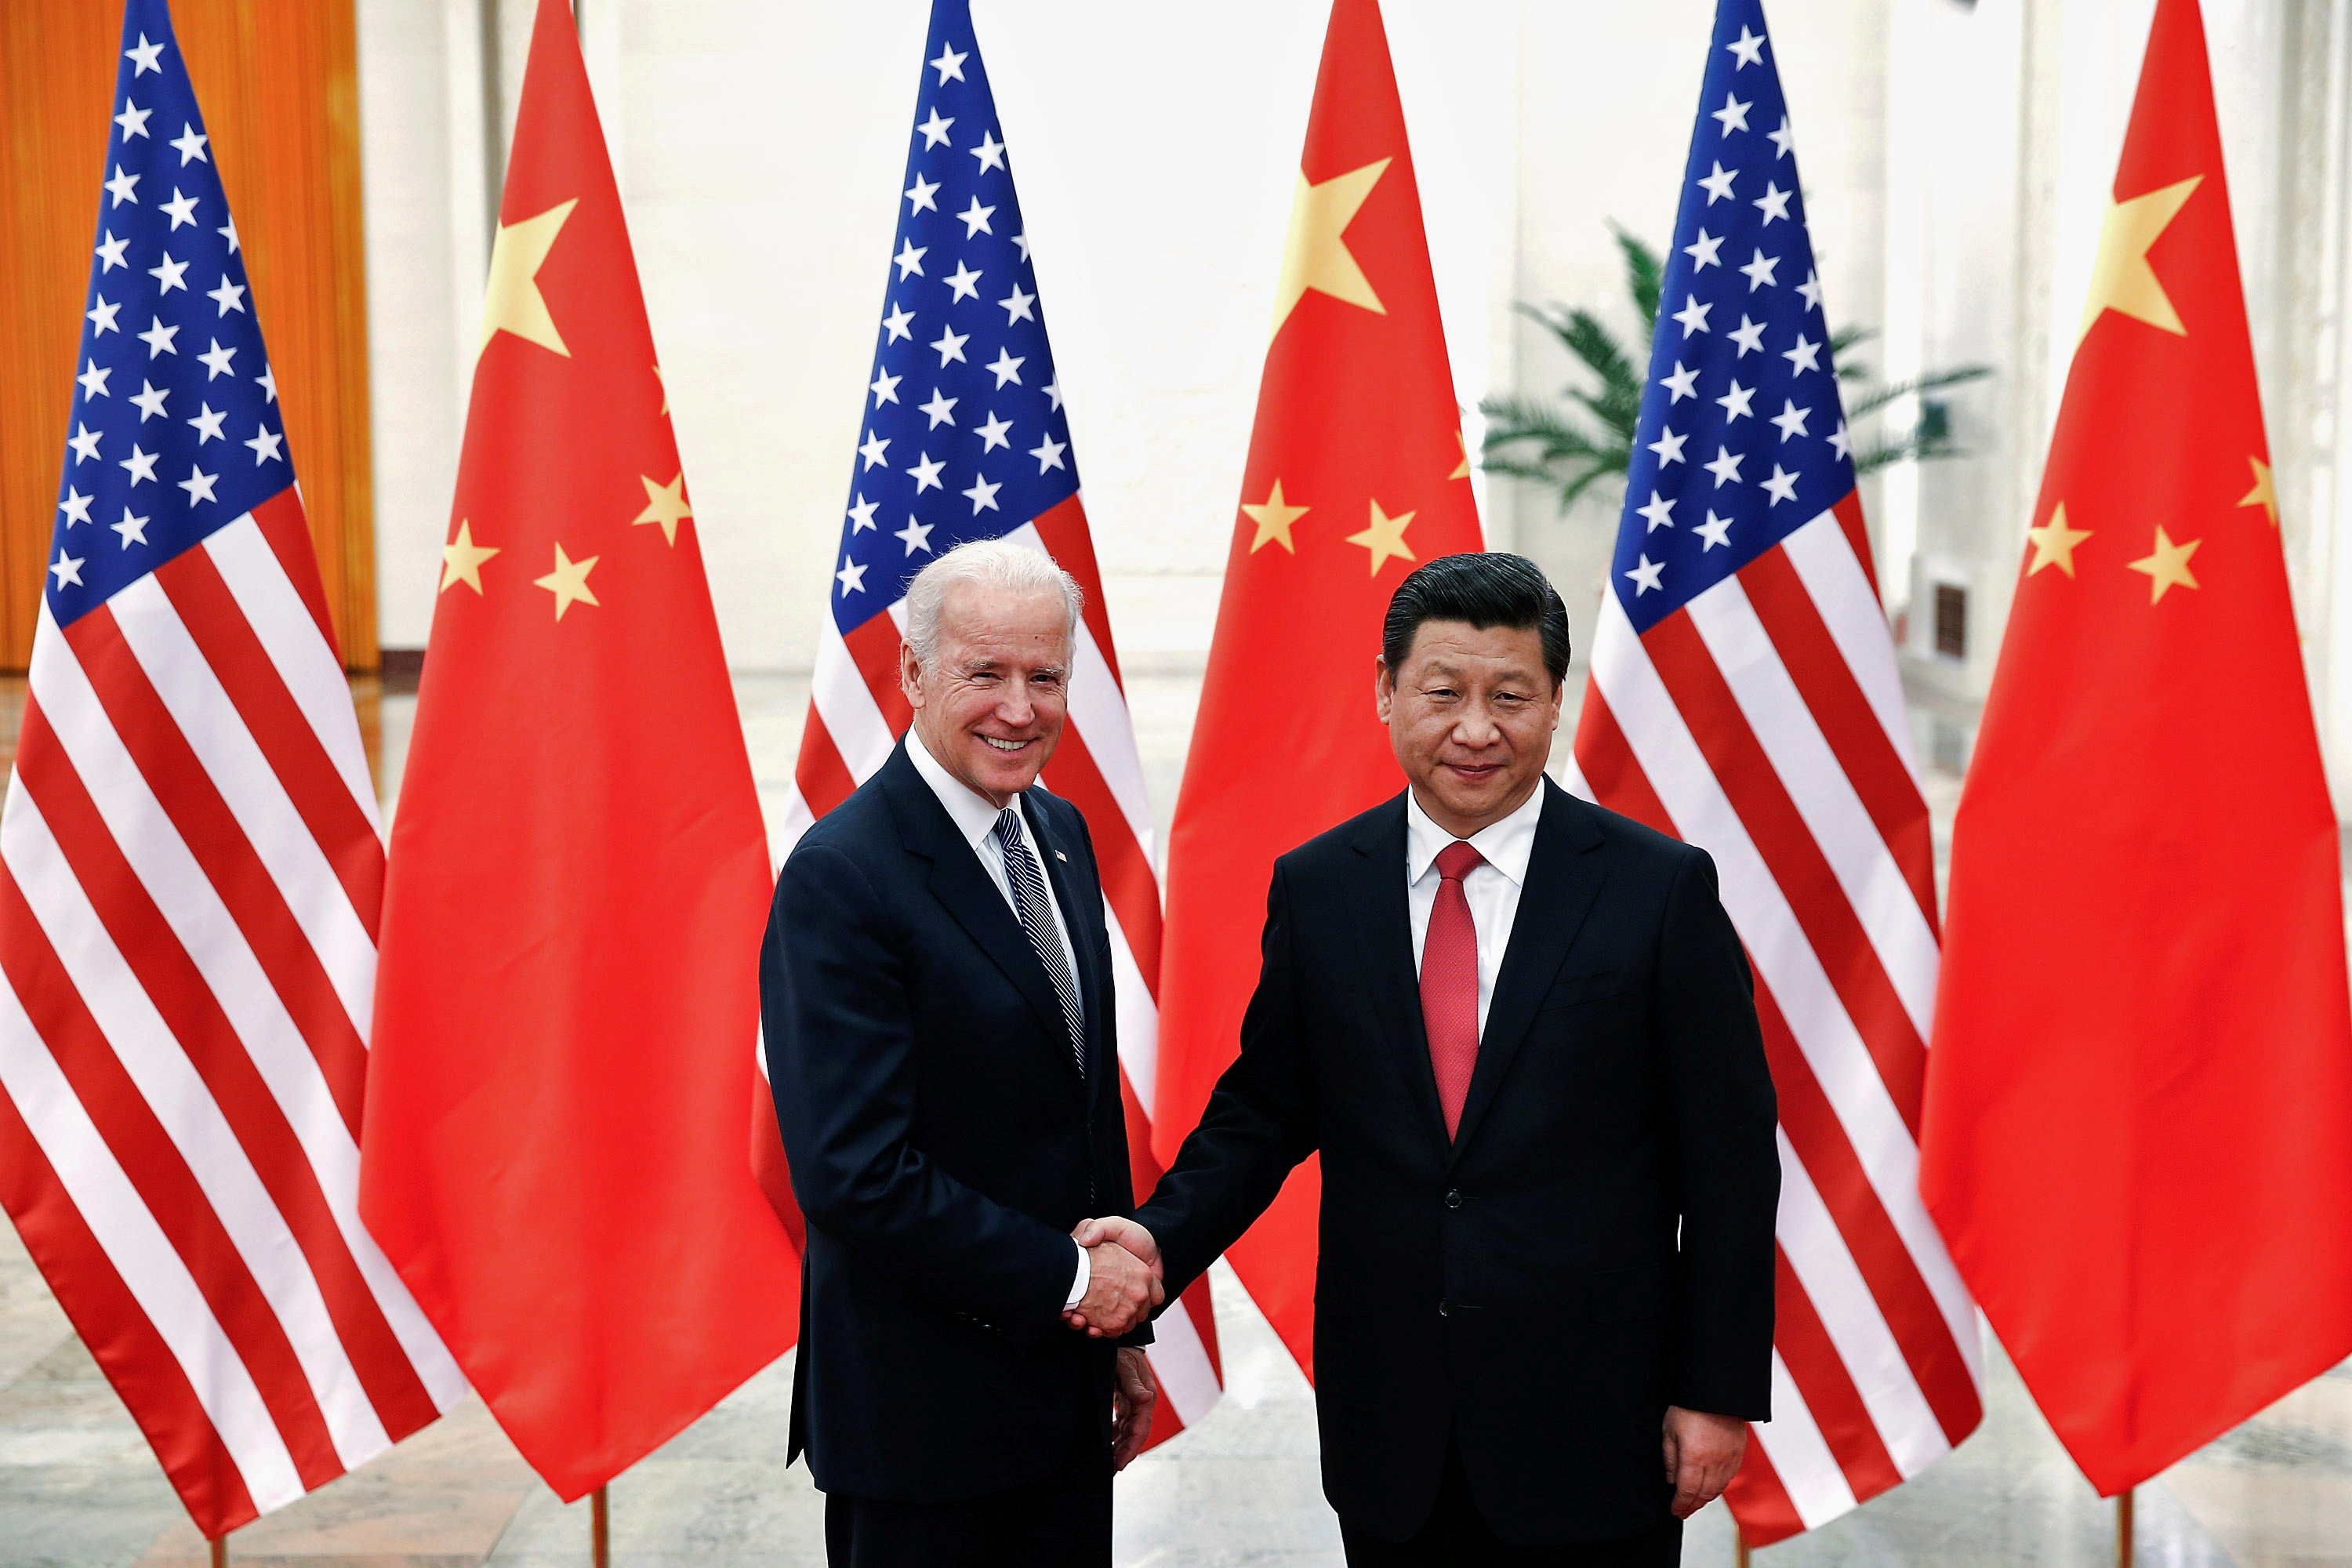 Chinese President Xi Jinping shakes hands with U.S. Vice President Joe Biden (L) inside the Great Hall of the People in Beijing December 4, 2013. REUTERS/Lintao Zhang